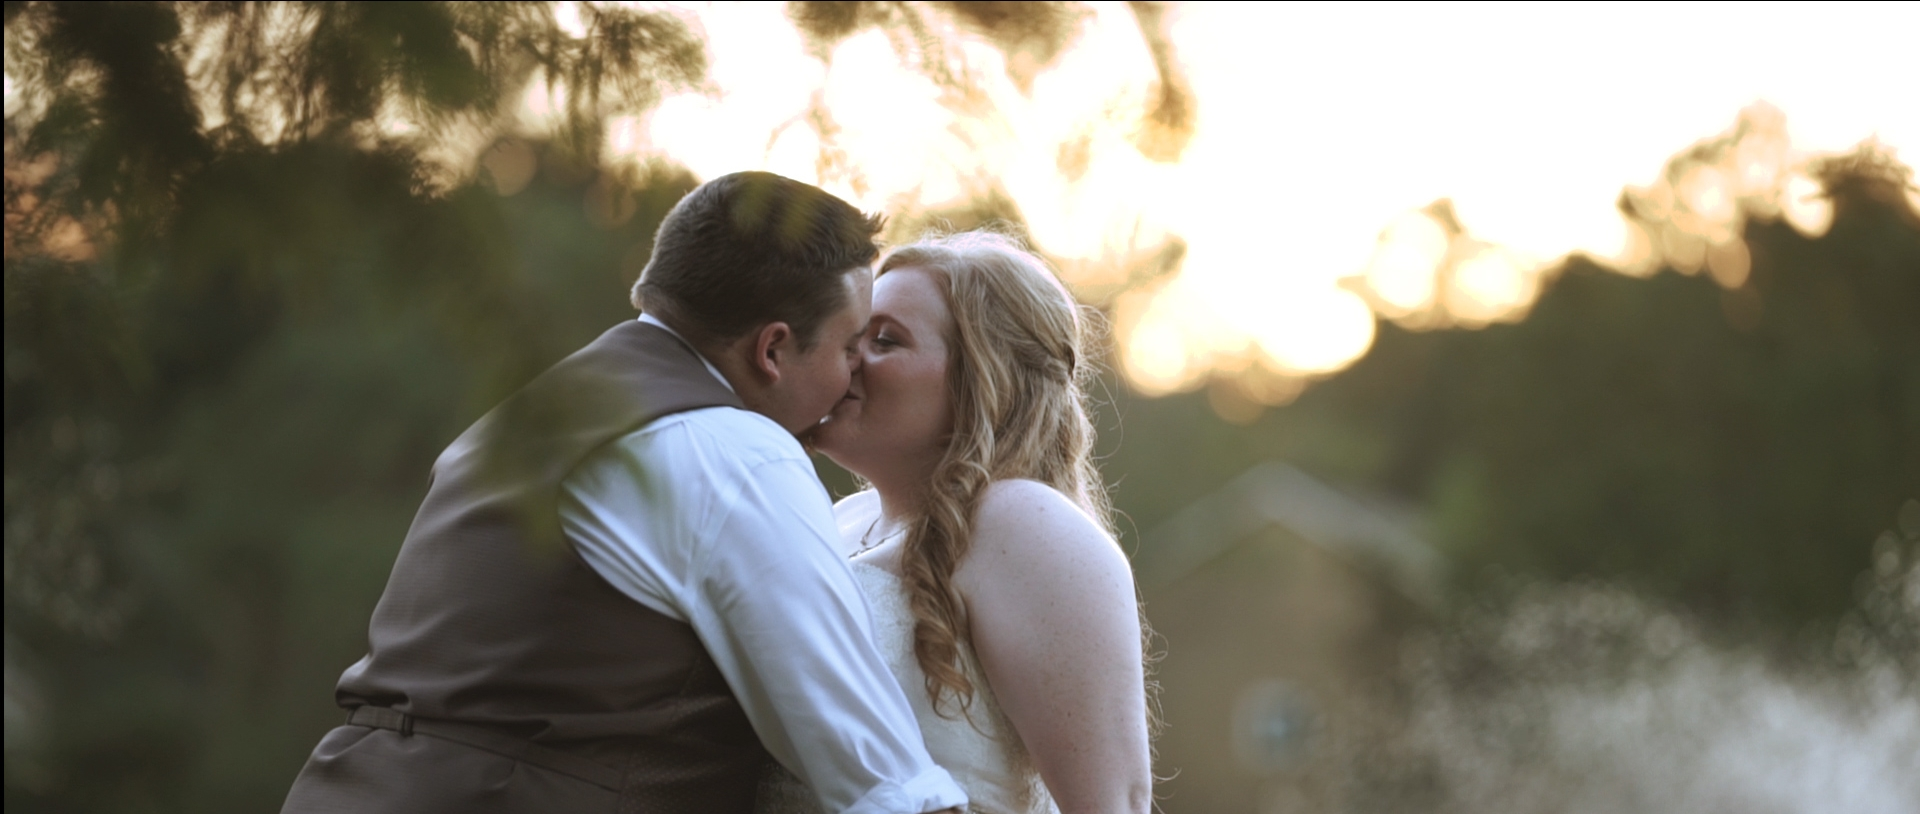 Brandi Morgan Lenz - We used EP Films for our wedding last year. We could not be happier with the way our video turned out. Rafael and his team are absolutely wonderful. Easy to work with and always willing to help. I would highly recommend them! We are so happy to have such a beautiful video to look back on our special day.